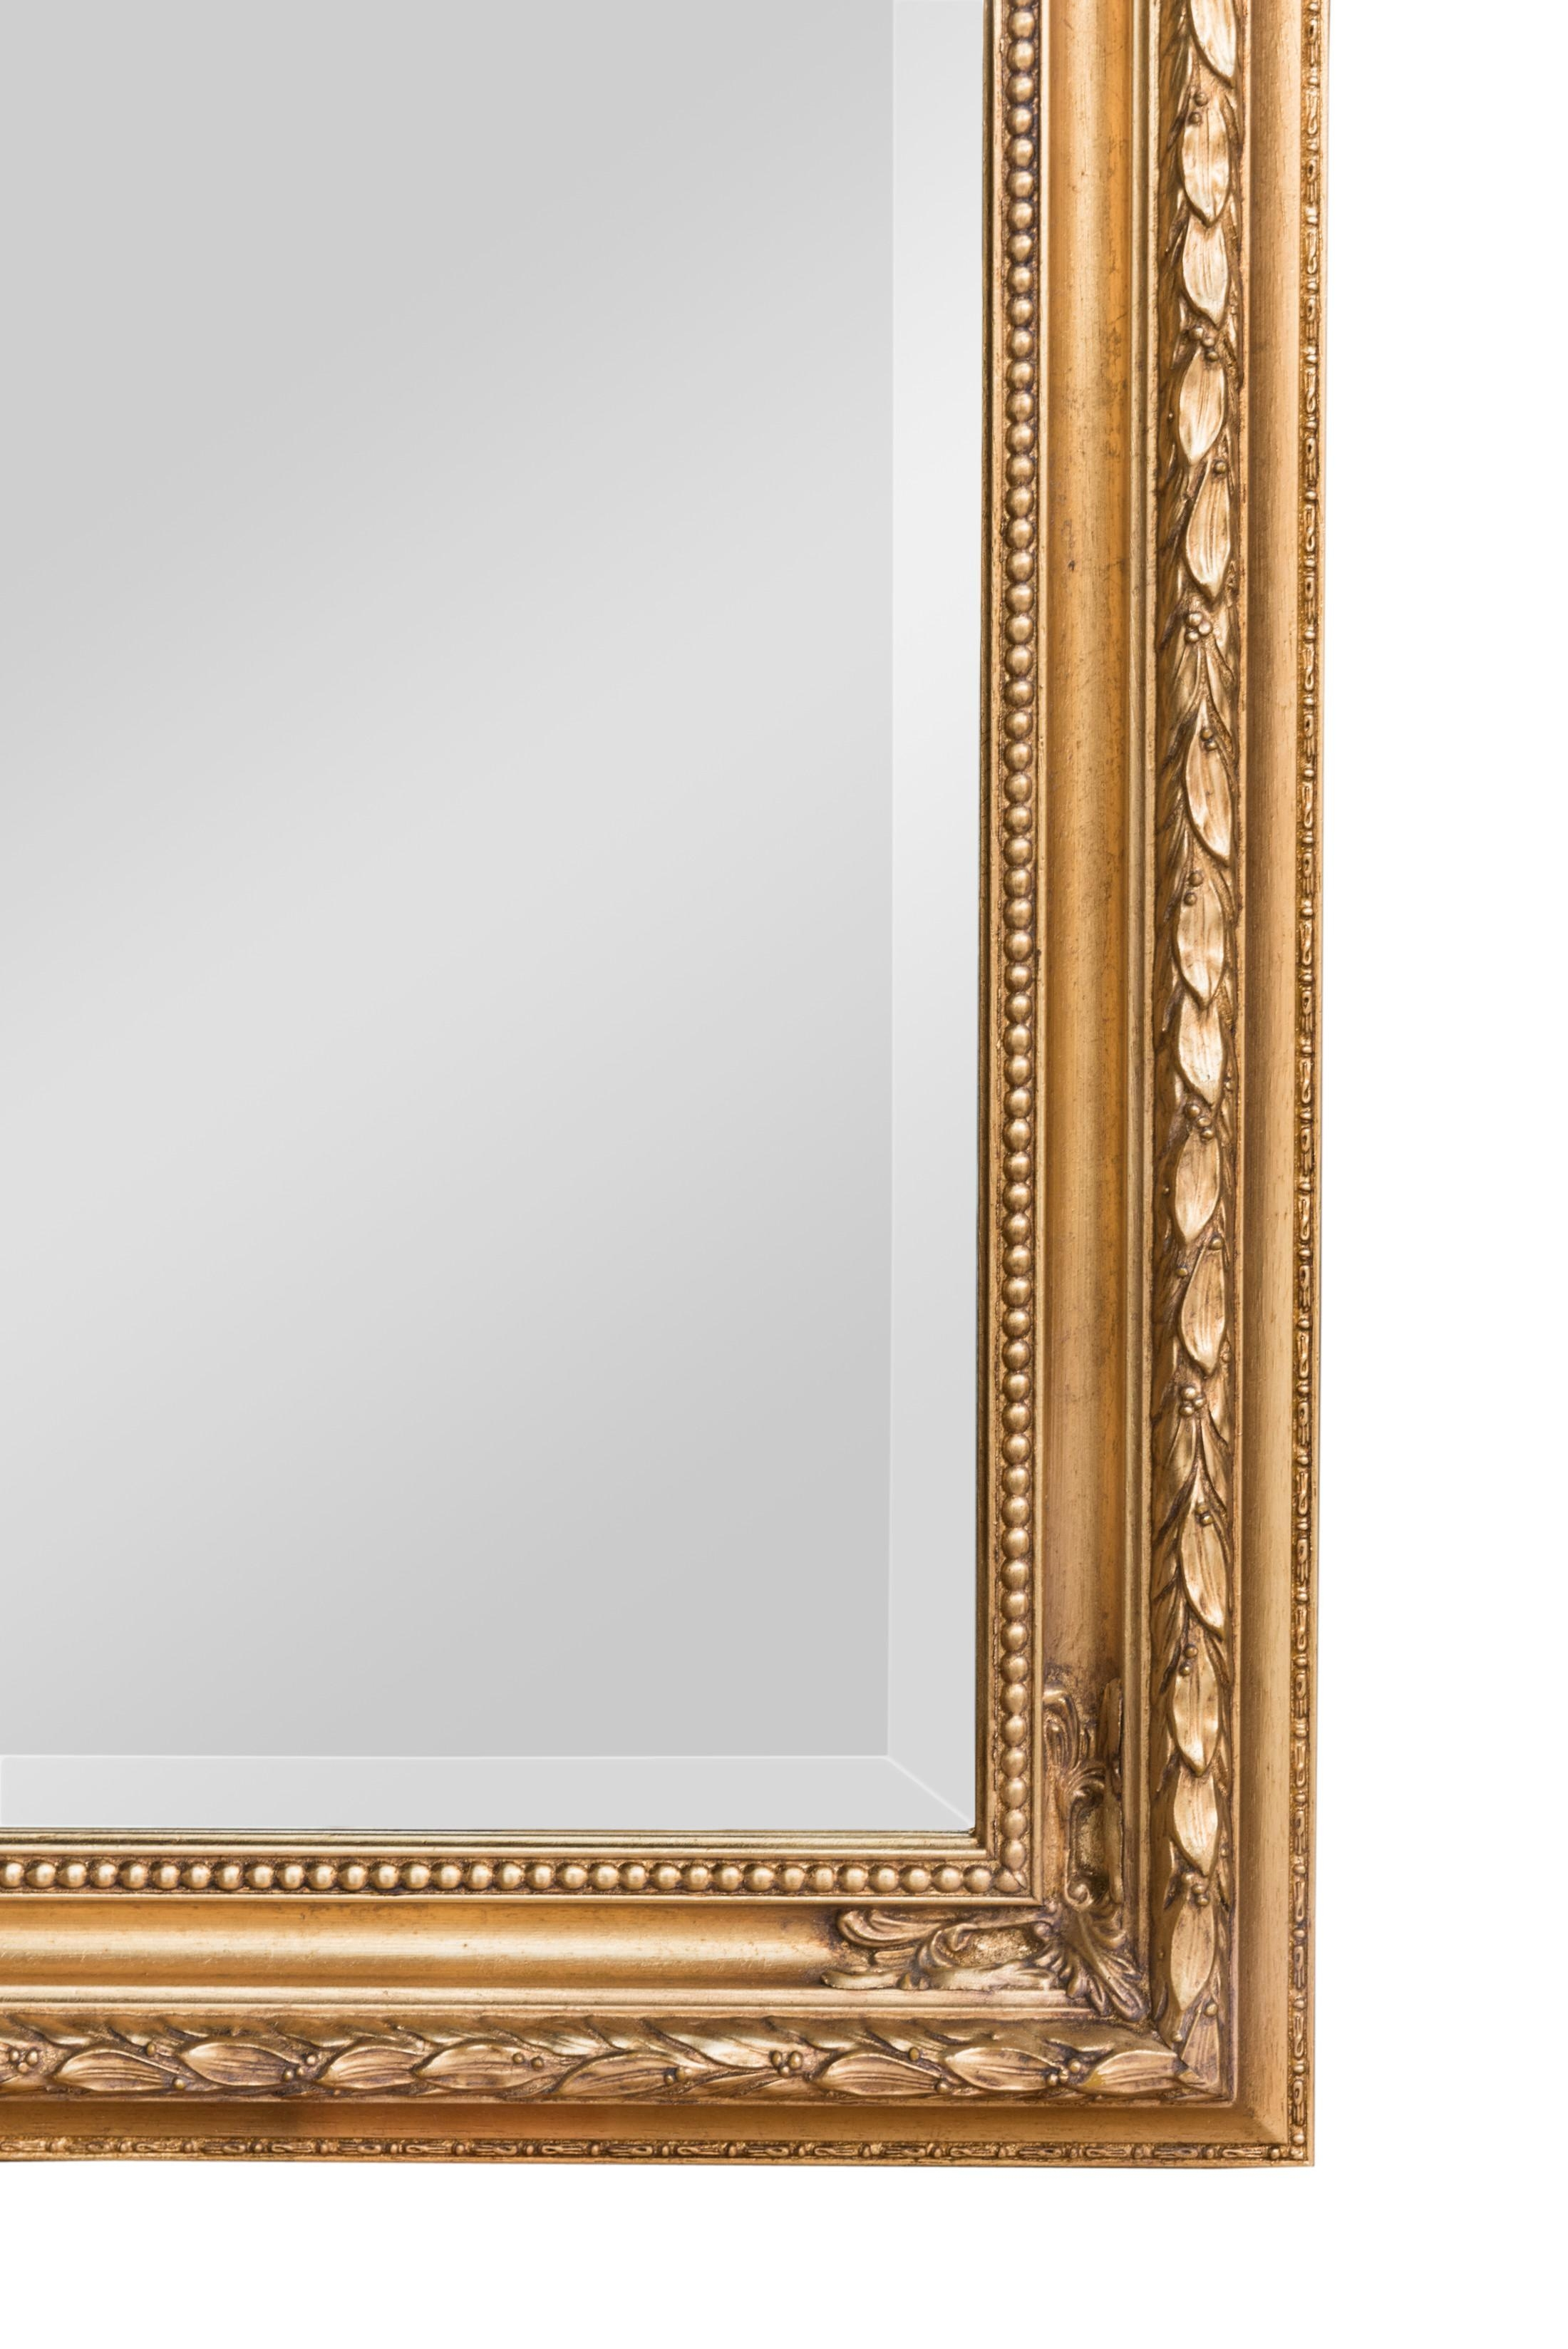 Gold Baroque Mirror | Bedroom Mirrors For Sale – Panfili Mirrors Within Baroque Mirror Gold (Photo 4 of 20)